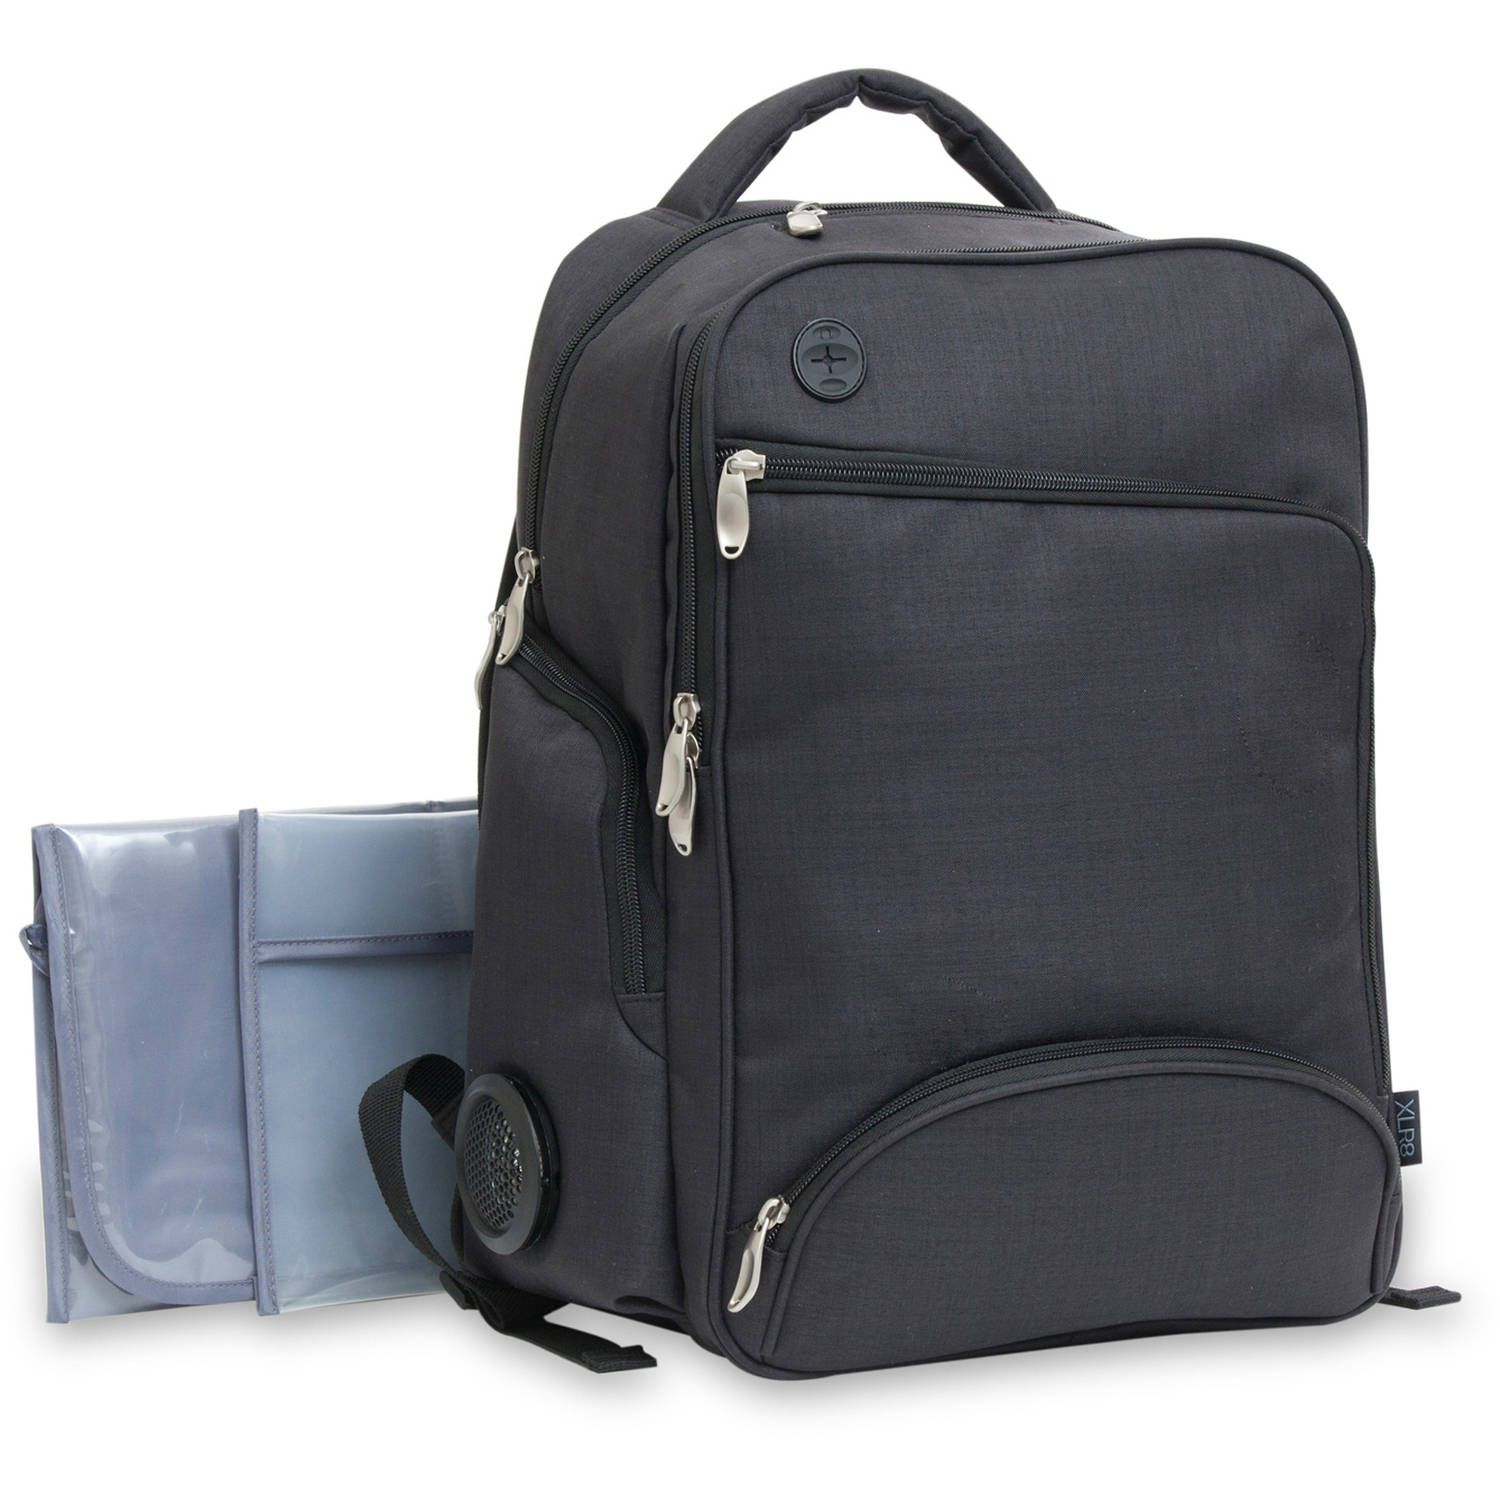 f6e82930a59f The 8 Best Backpack Diaper Bags of 2019